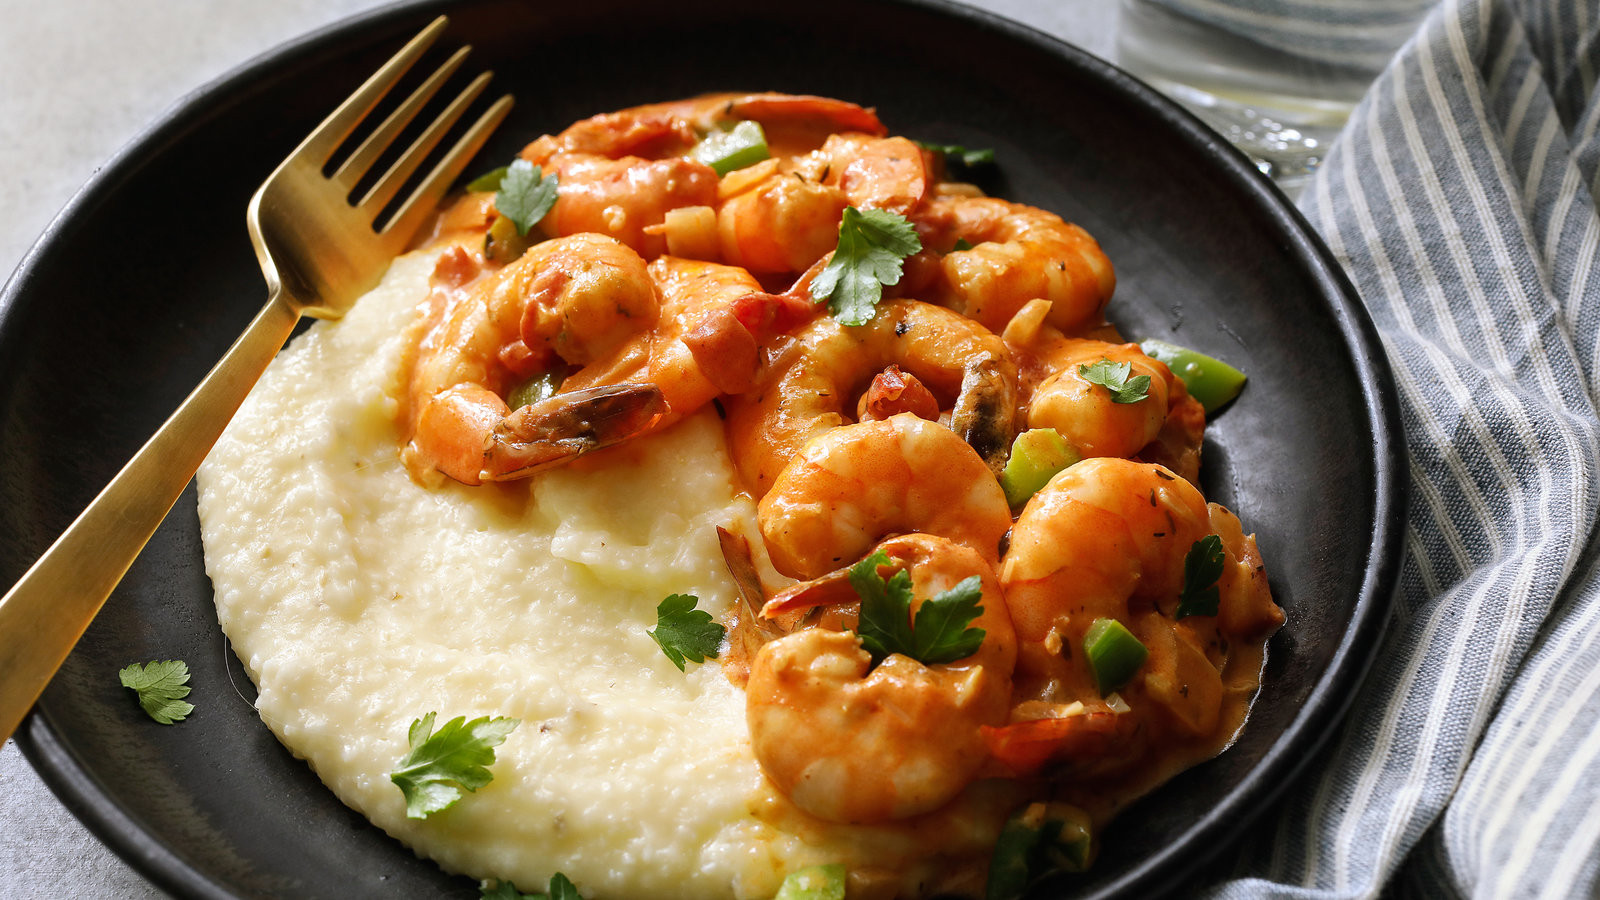 Grits And Shrimp  Shrimp and Grits Recipe NYT Cooking